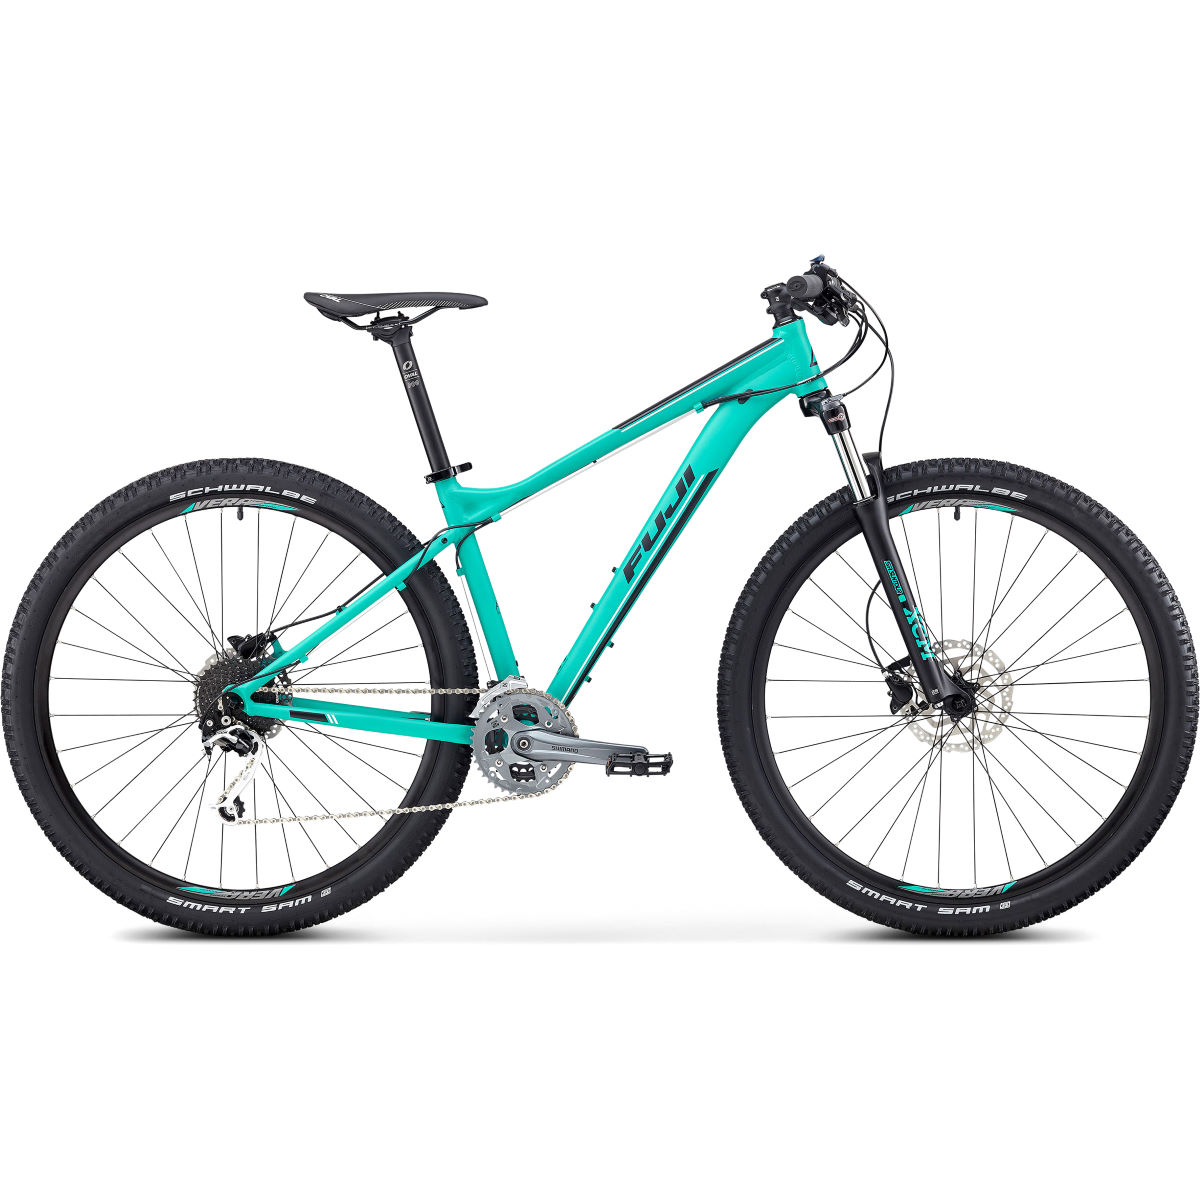 VTT semi-rigide Fuji Nevada 29 1.3 - 43cm(17'') Stock Bike